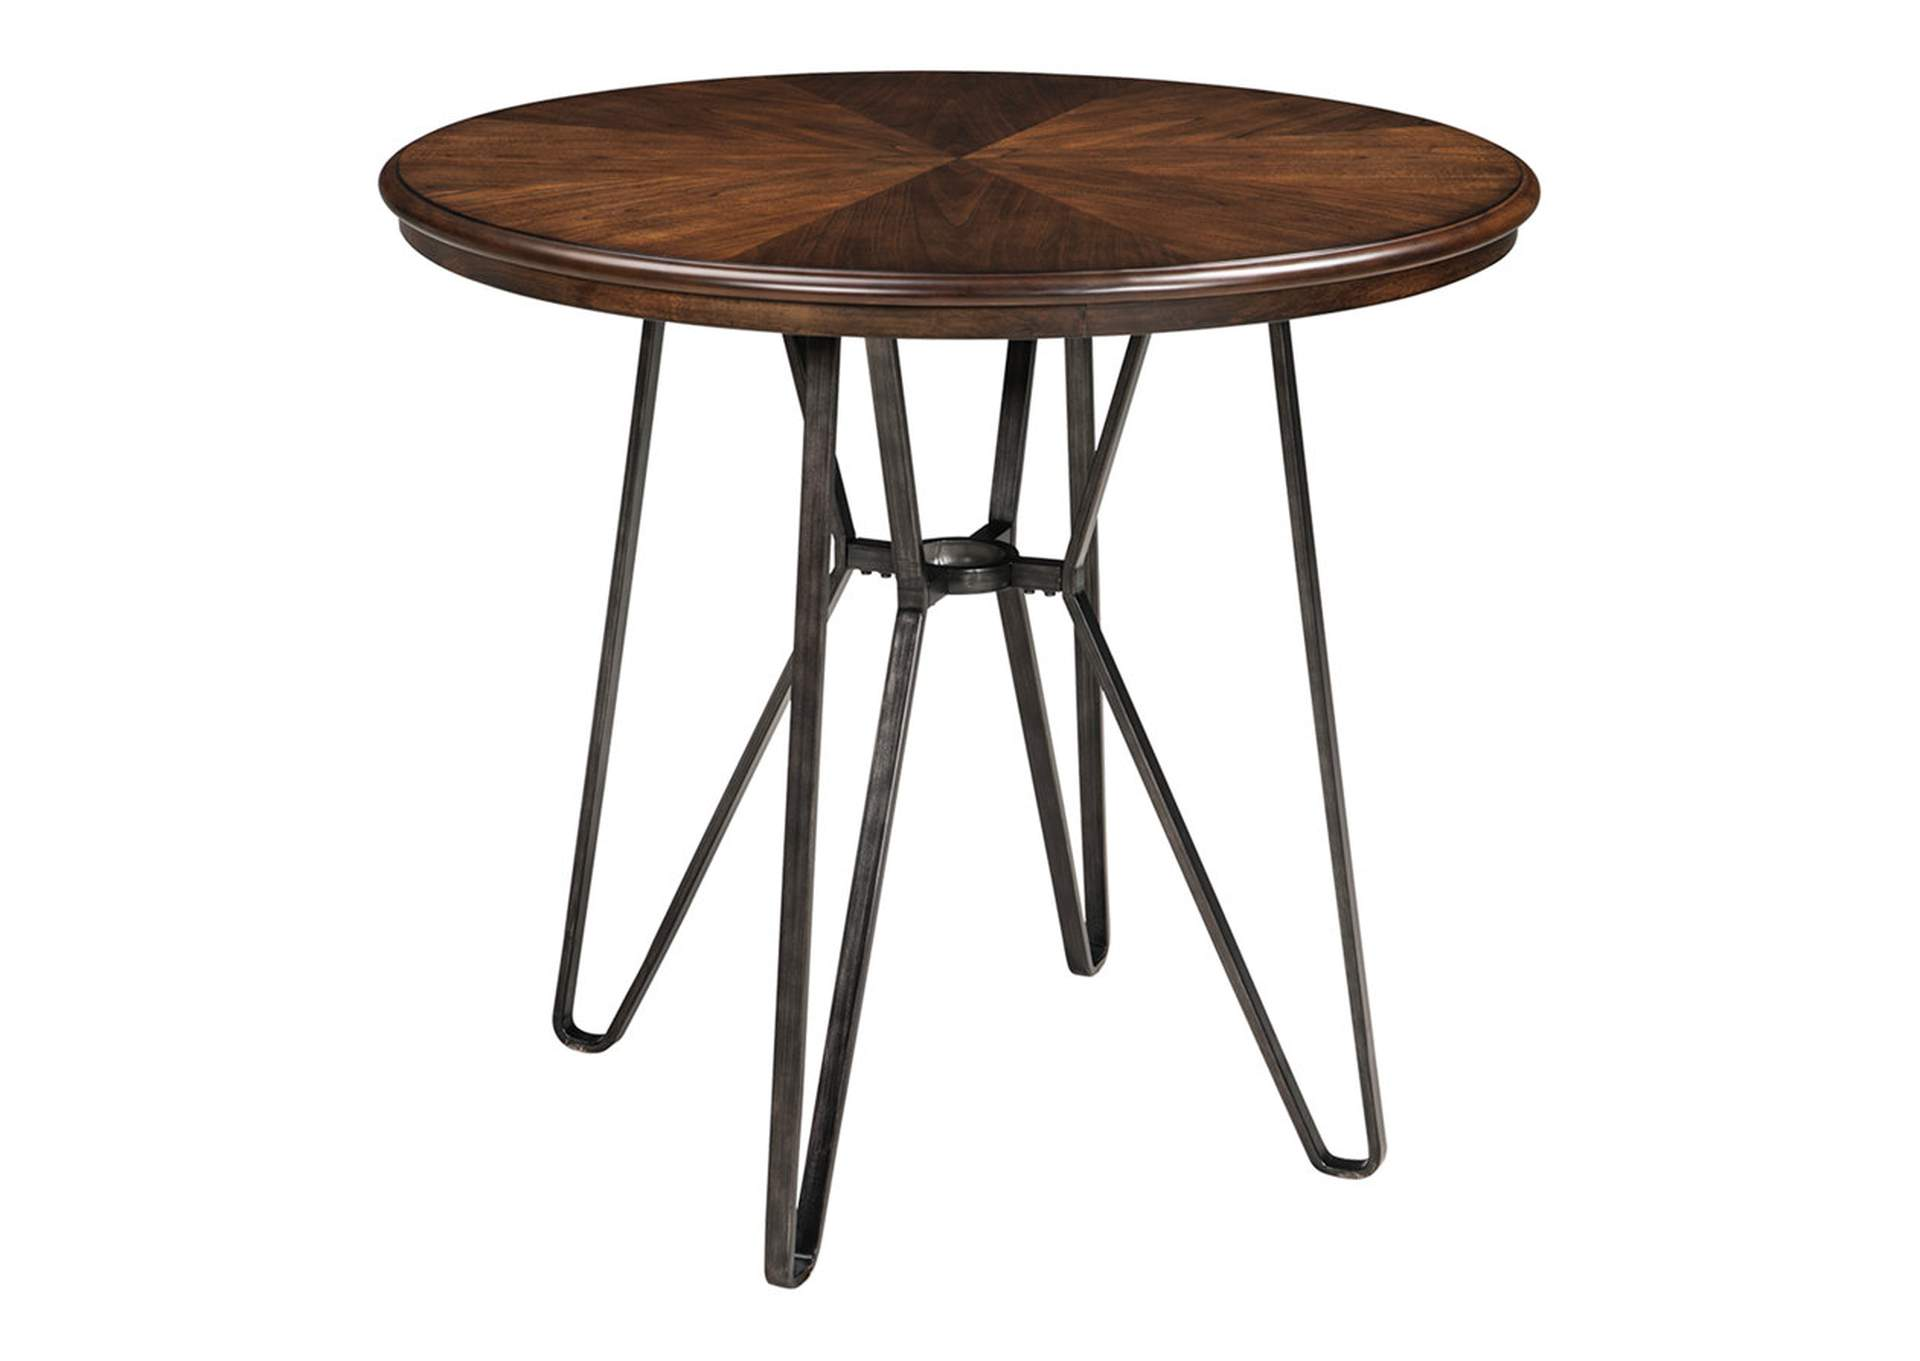 Picture of: Centiar Counter Height Dining Room Table Ashley Furniture Homestore Independently Owned And Operated By Nphc Trading Co Ltd